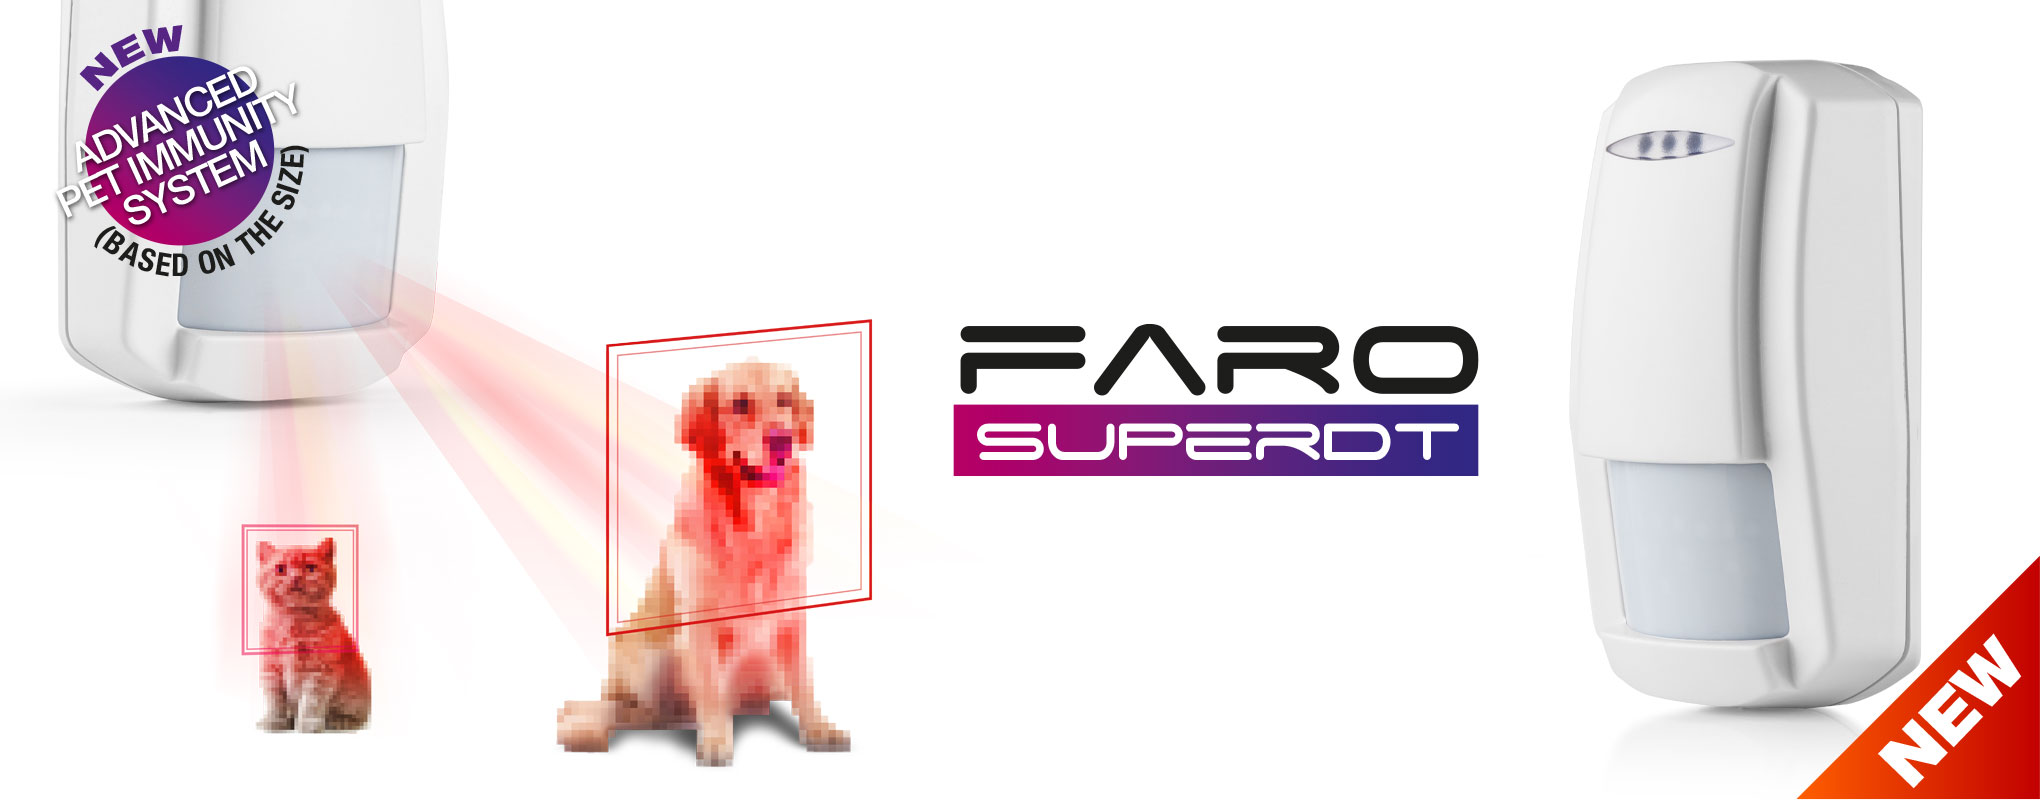 Faro SUPER DT | Dual technology motion detector with pet immunity